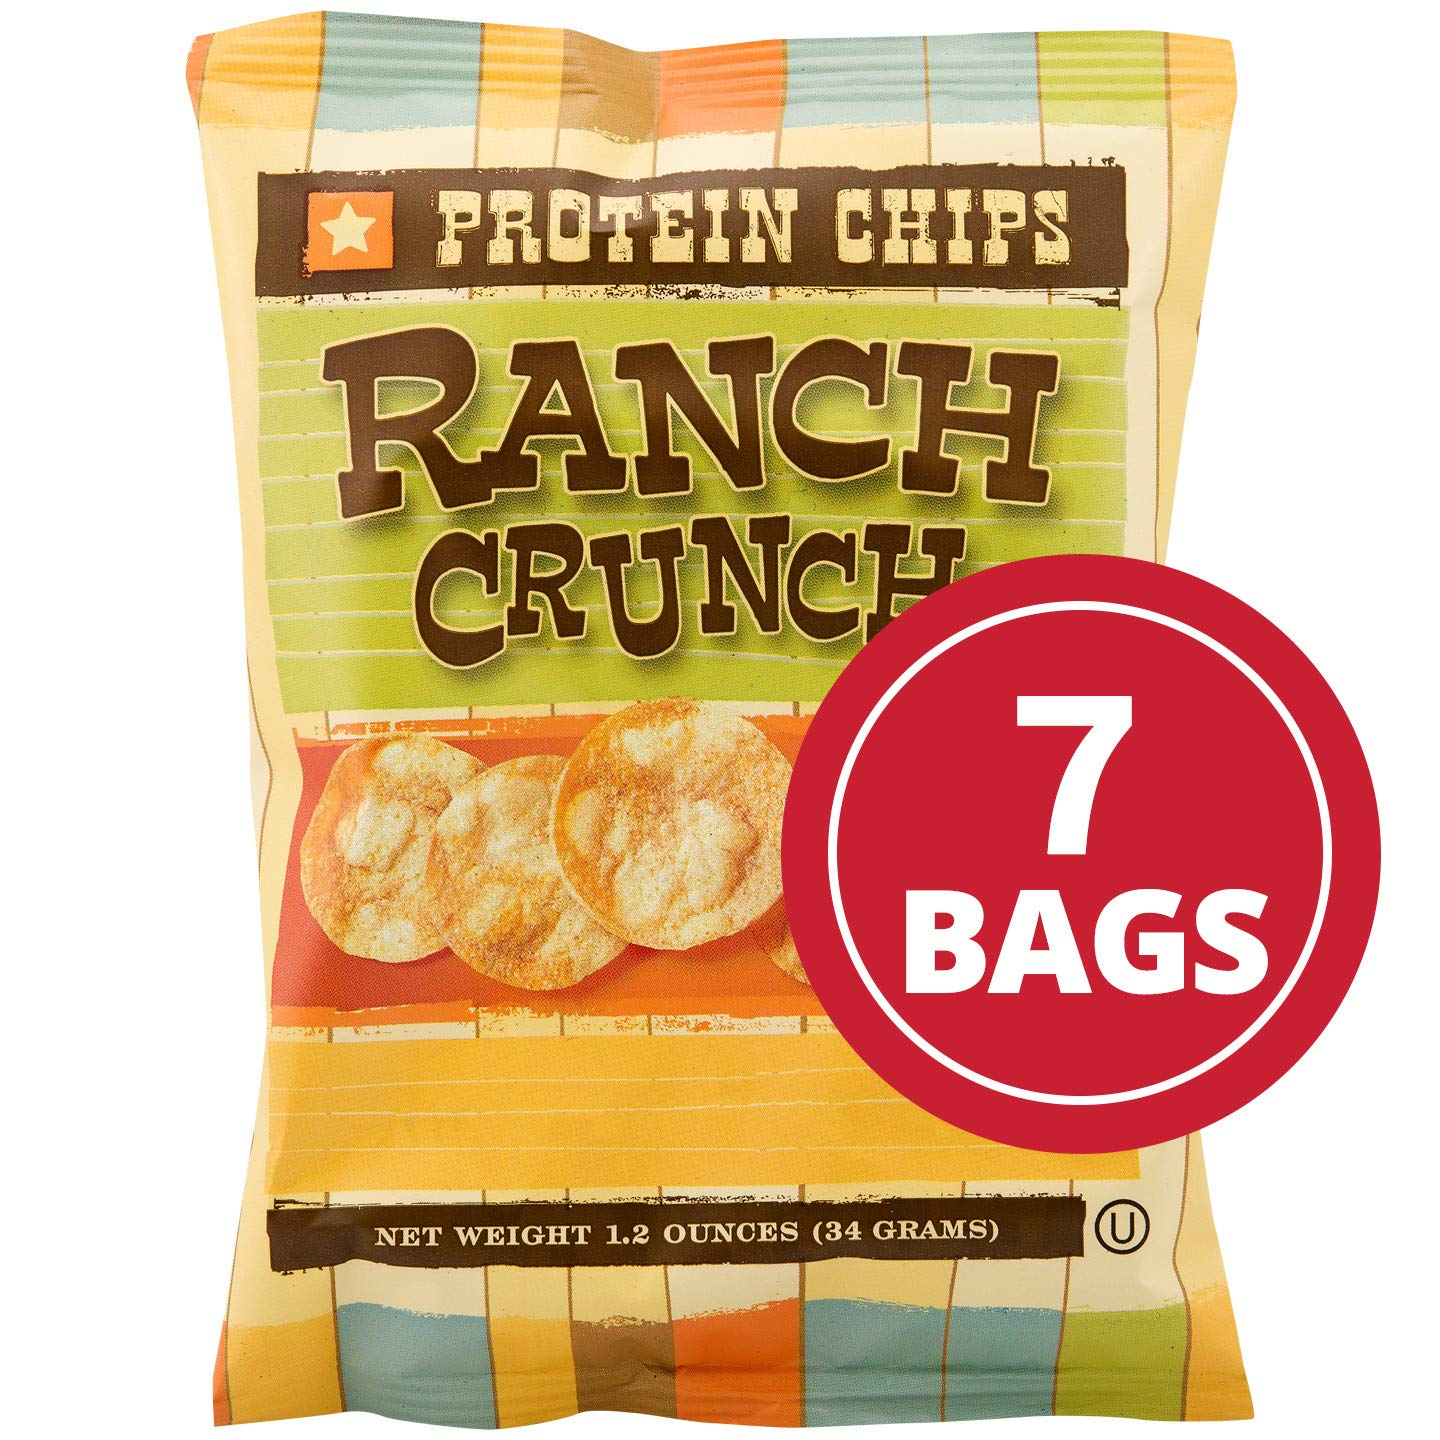 NutriWise - Ranch Crunch Chips | 10g Protein Potato Crisps | High Protein, Low Calorie, Low Cholesterol, High Fiber (7 Bags) by NutriWise